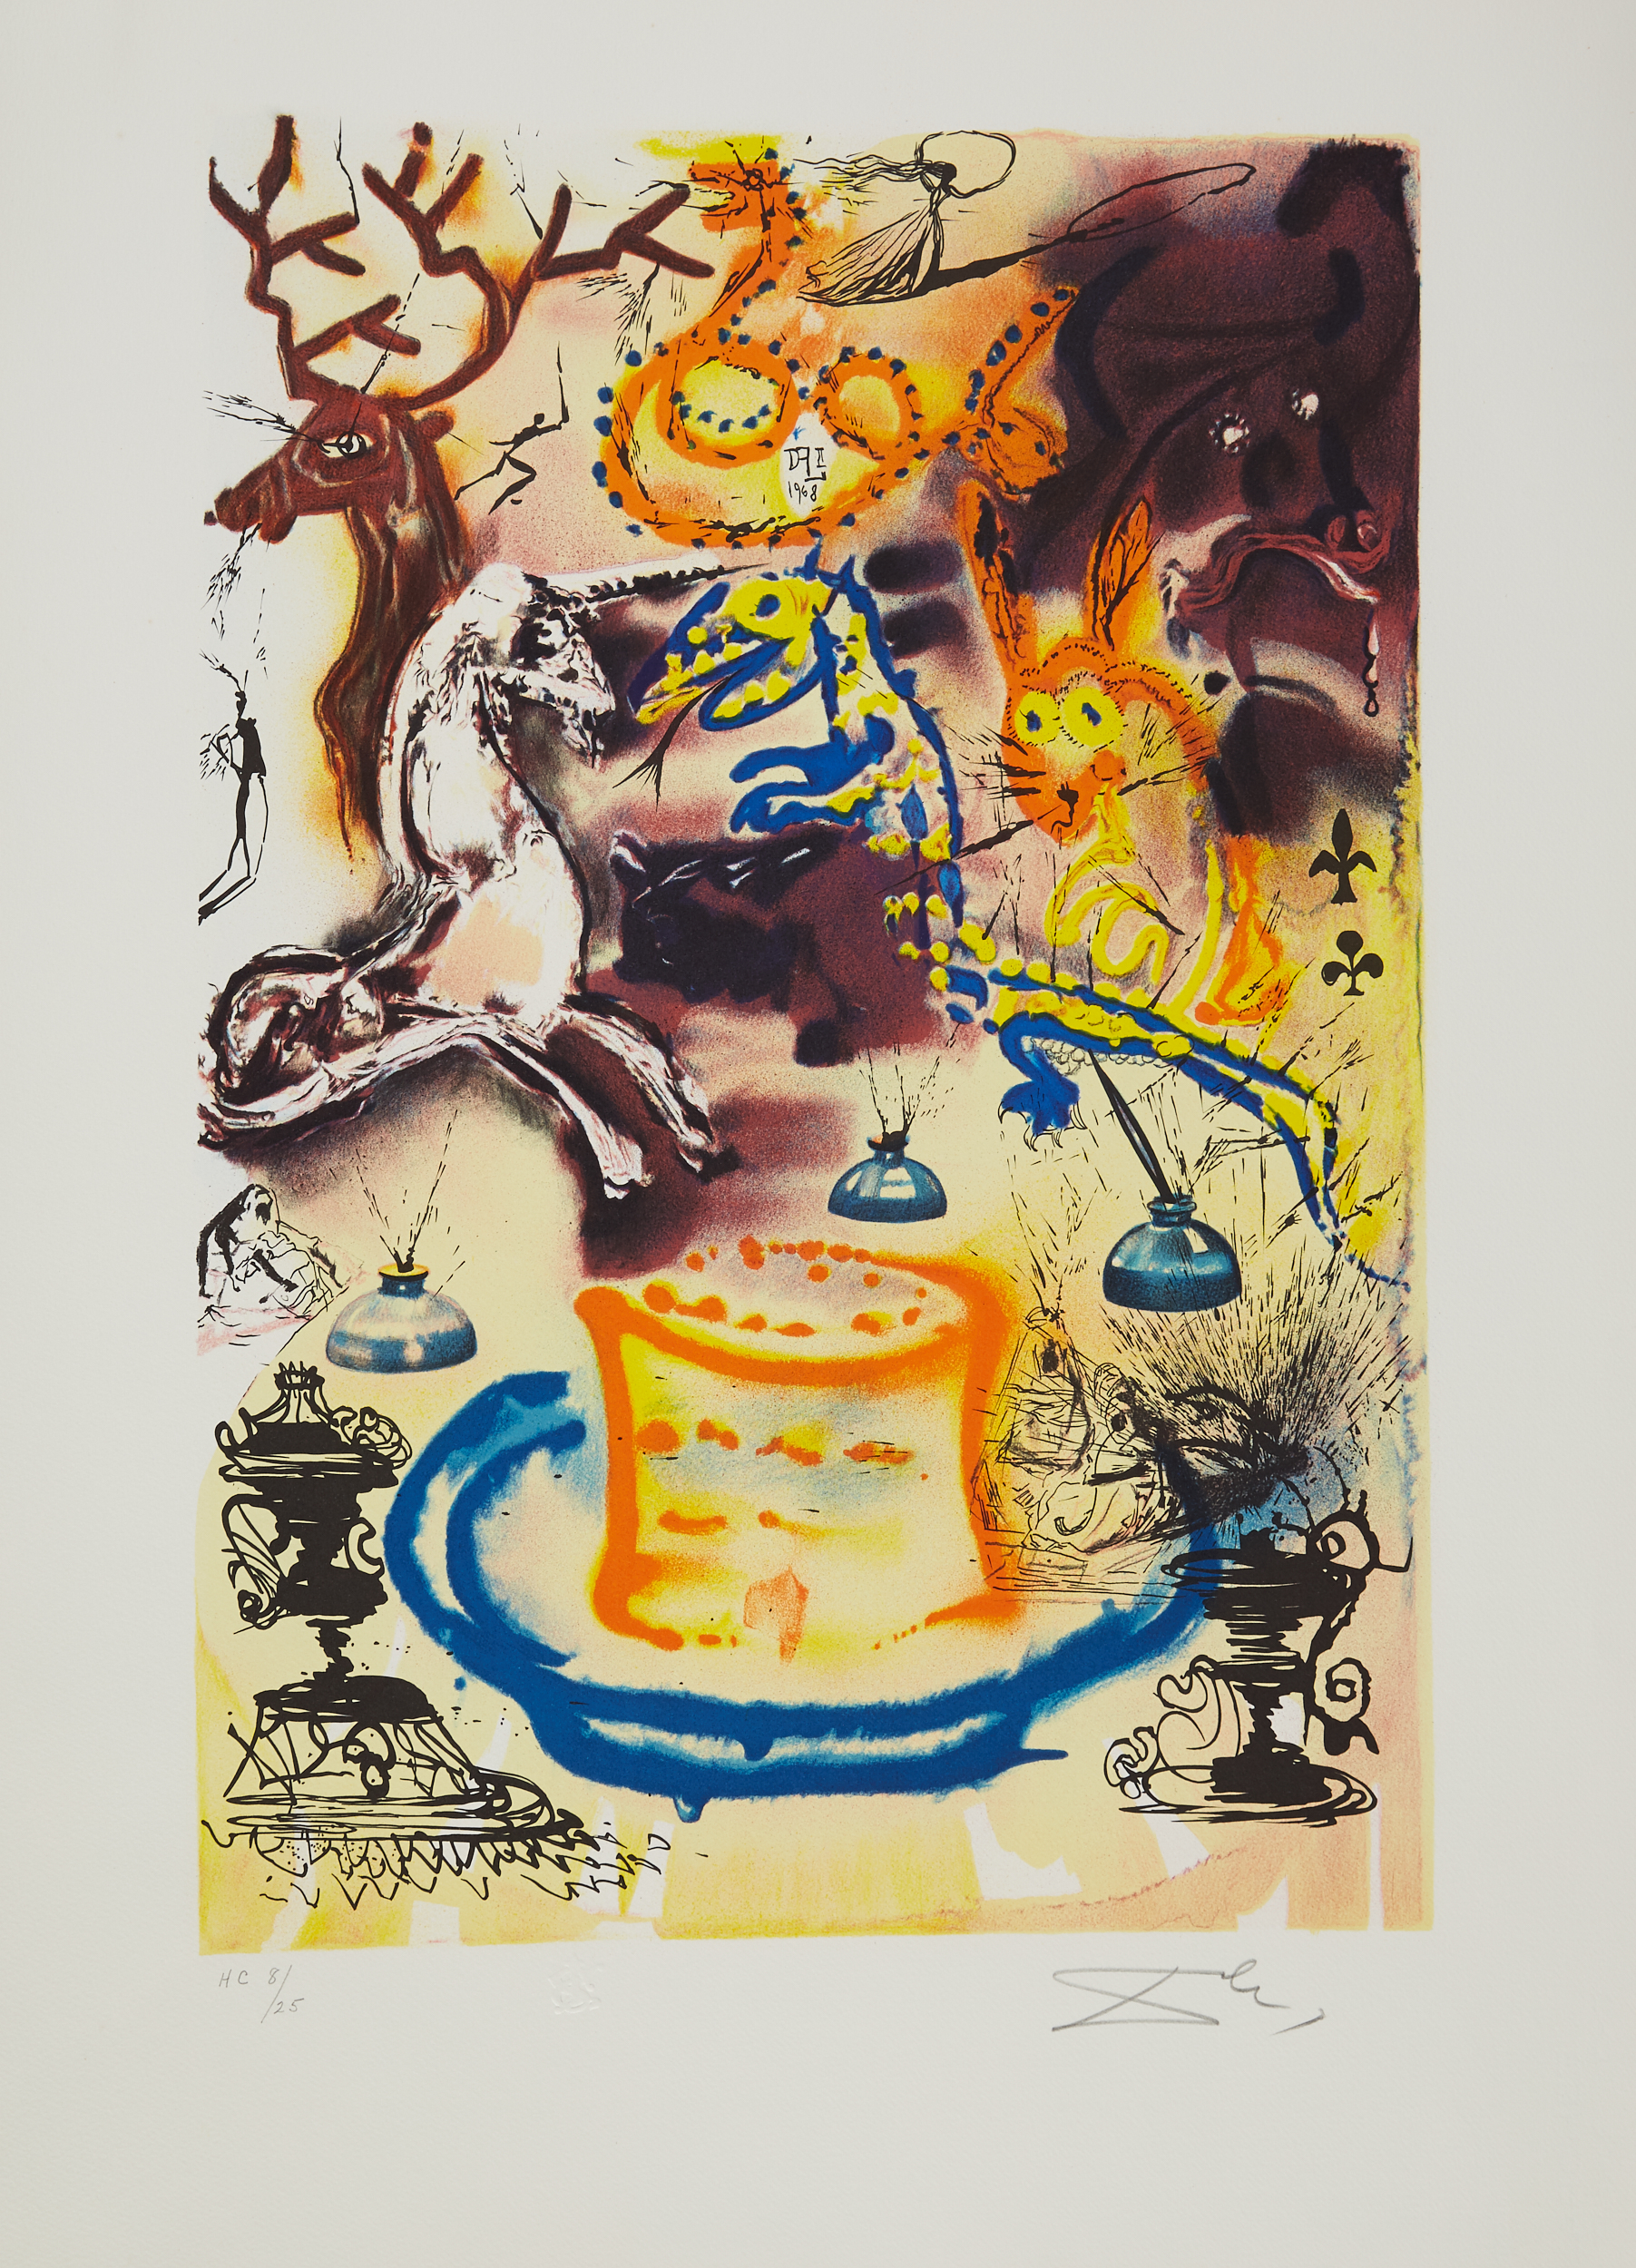 Lot 48 - 4 After Salvador Dali Alice in Wonderland Color Lithographs